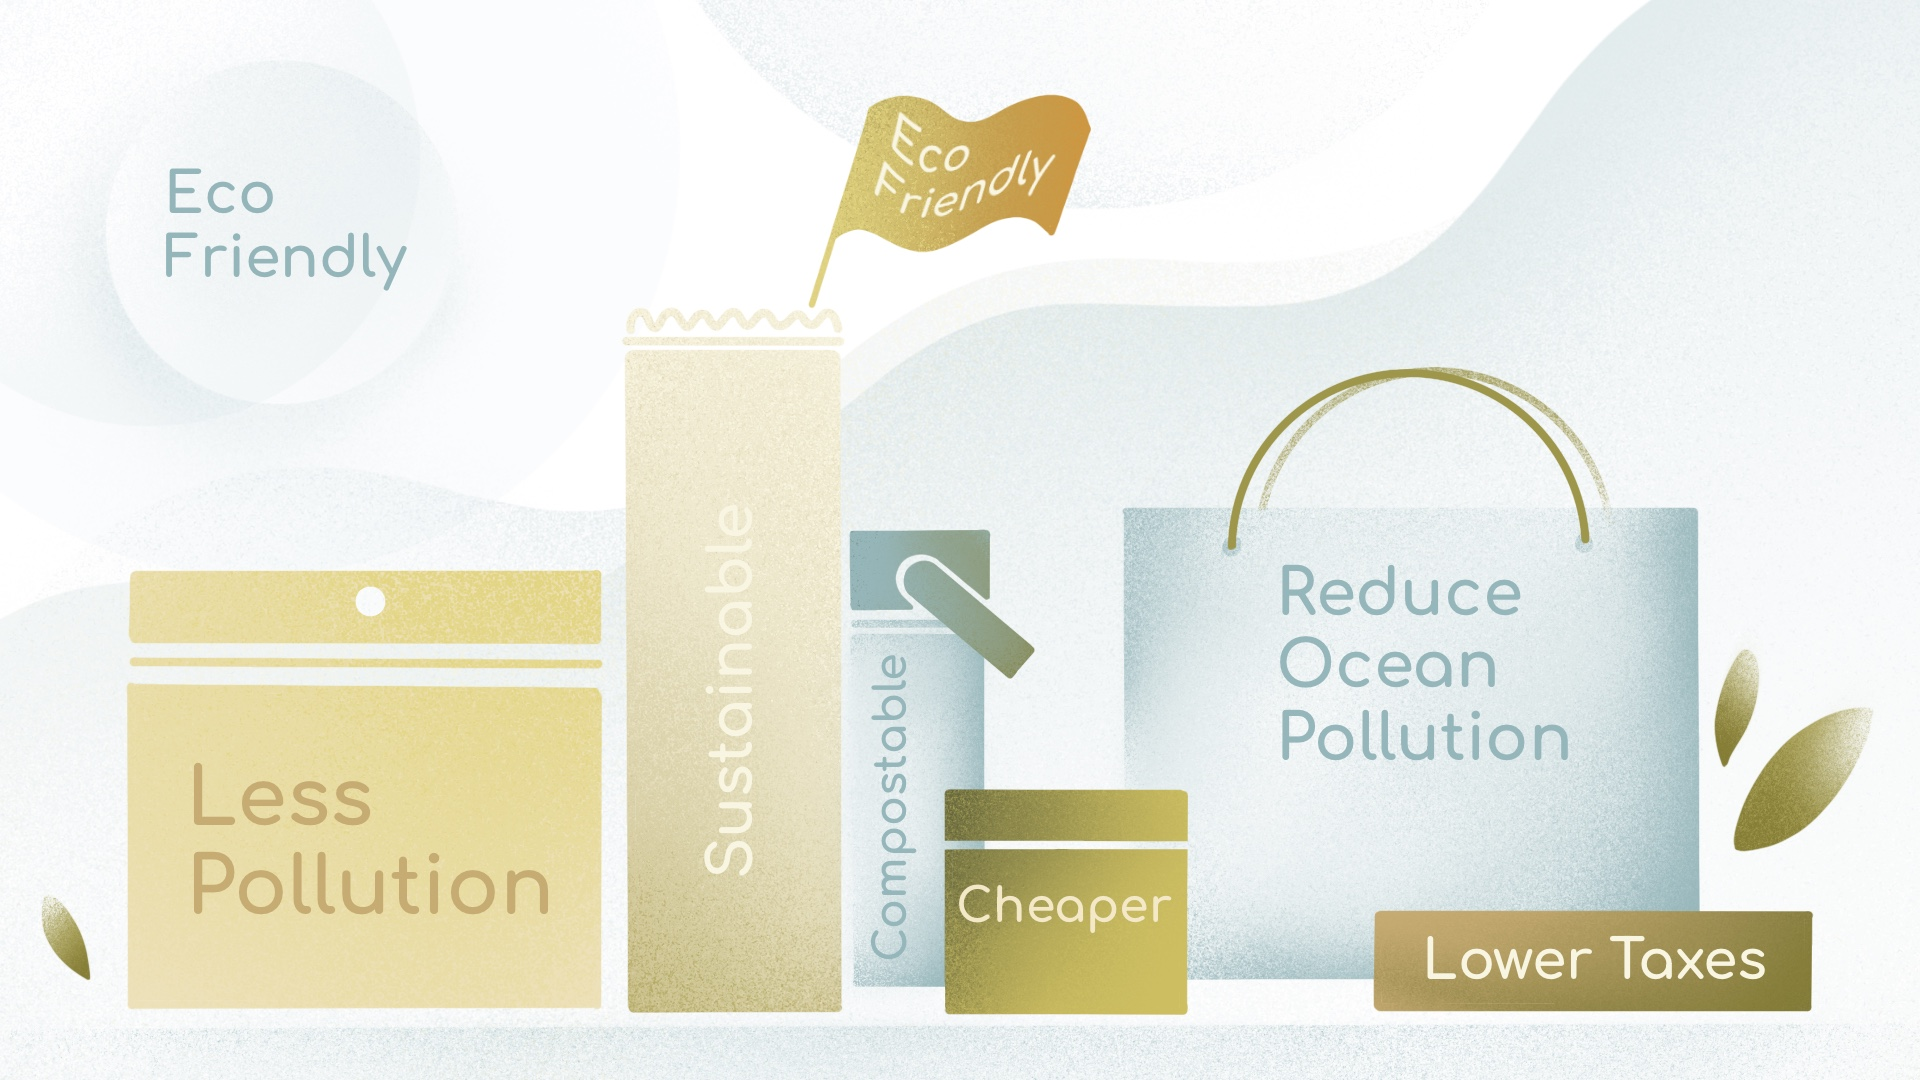 Eco friendly infographic 1 The Pros and Cons of Eco-Friendly Packaging and Why It Pays to Make the Switch